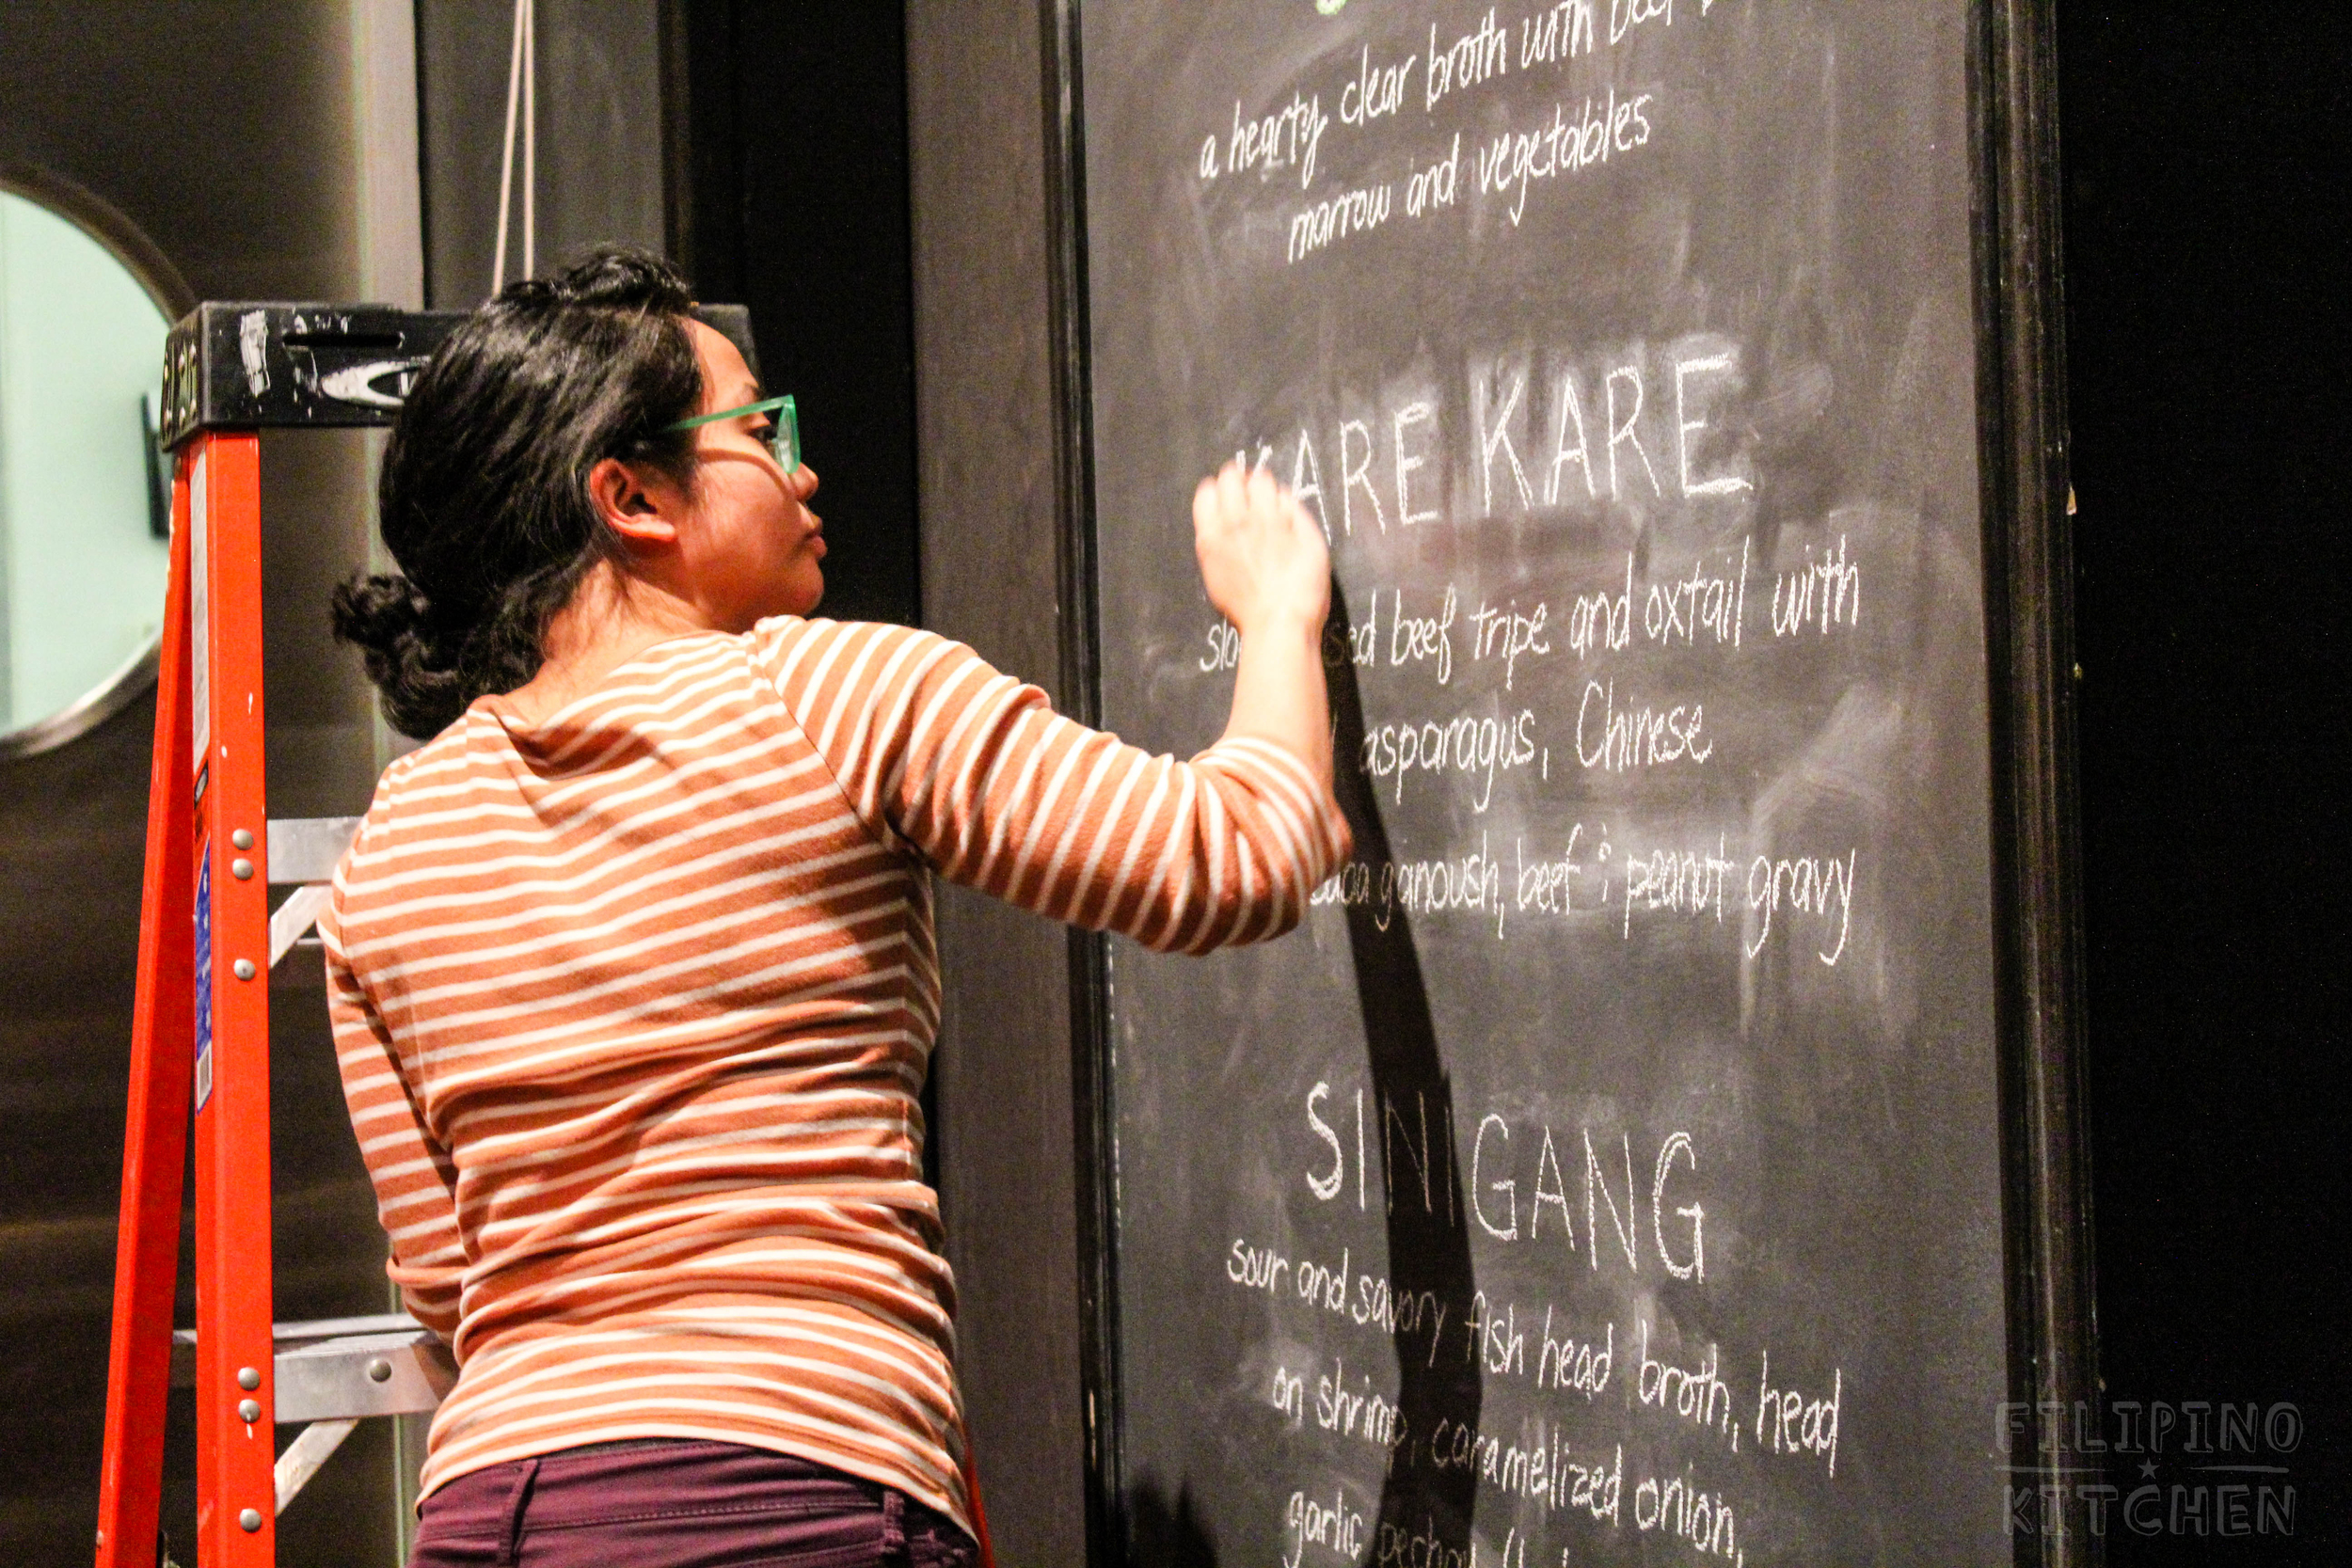 Without a ruler (!!) Angeline Mascareñas of Escolta St. Snatchers Social Club drafts our menu boards.